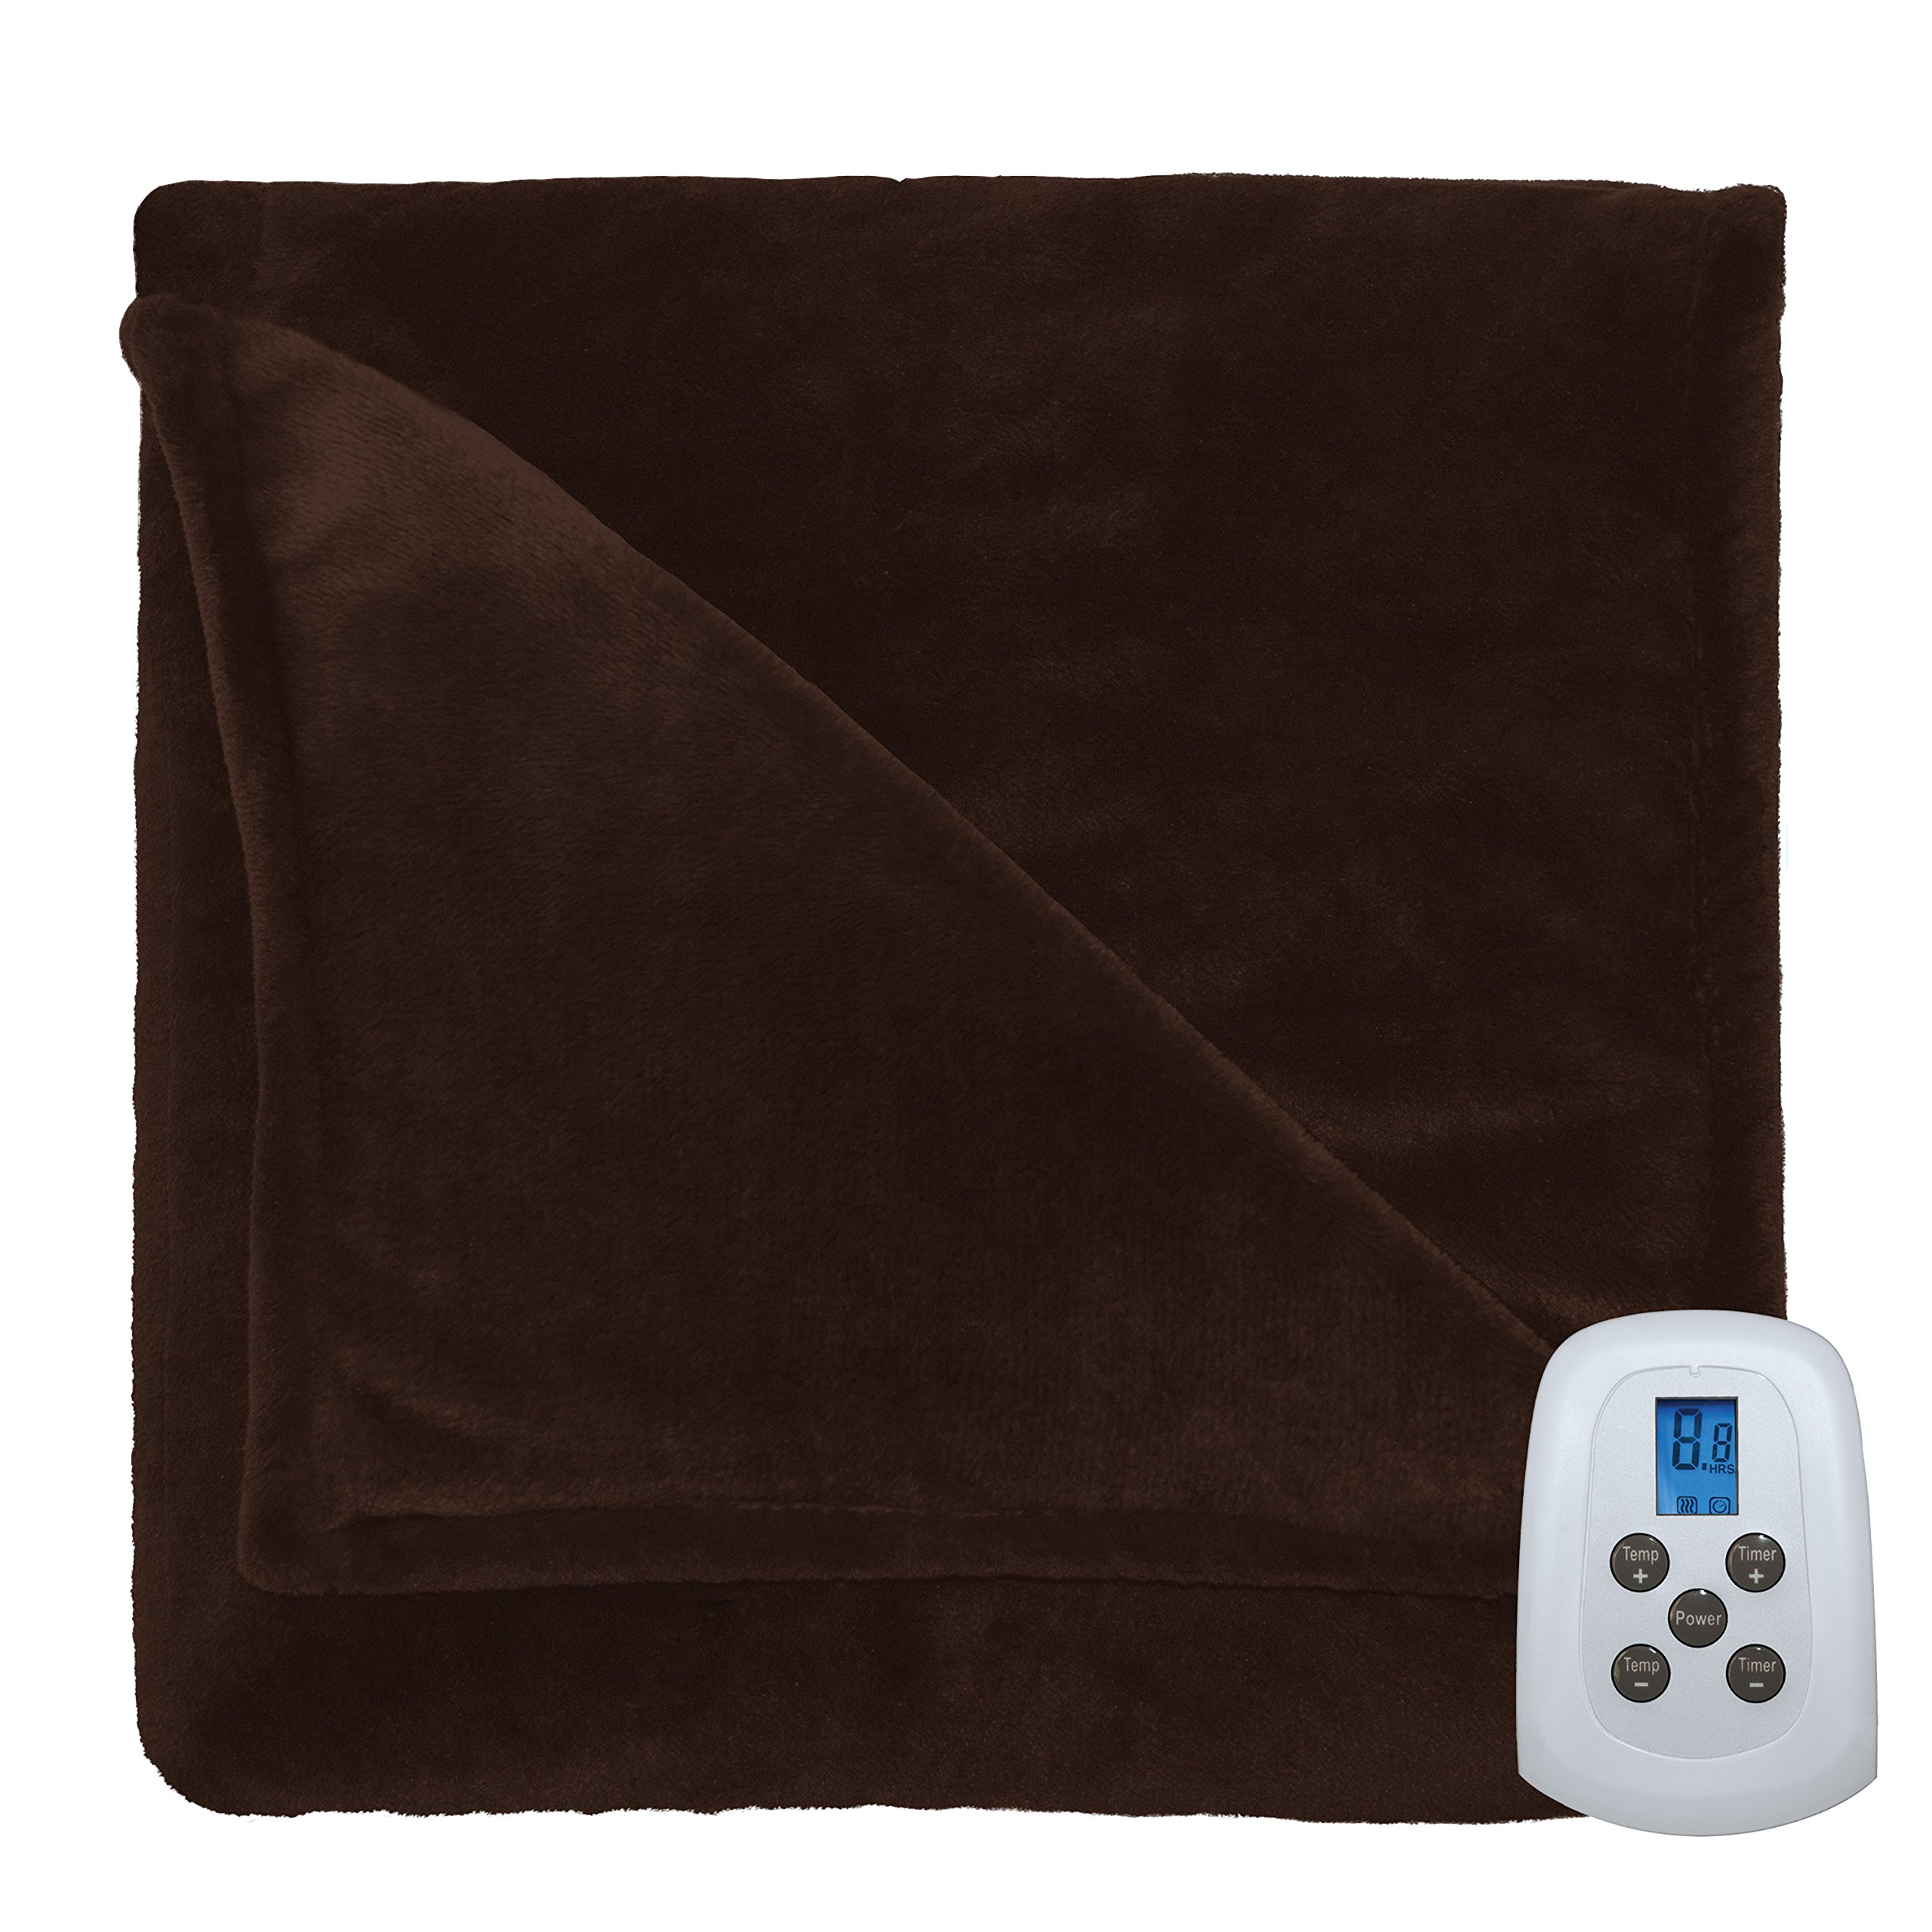 Serta 857556 Silky Plush Blanket with Programmable Digital Controller, King, Chocolate